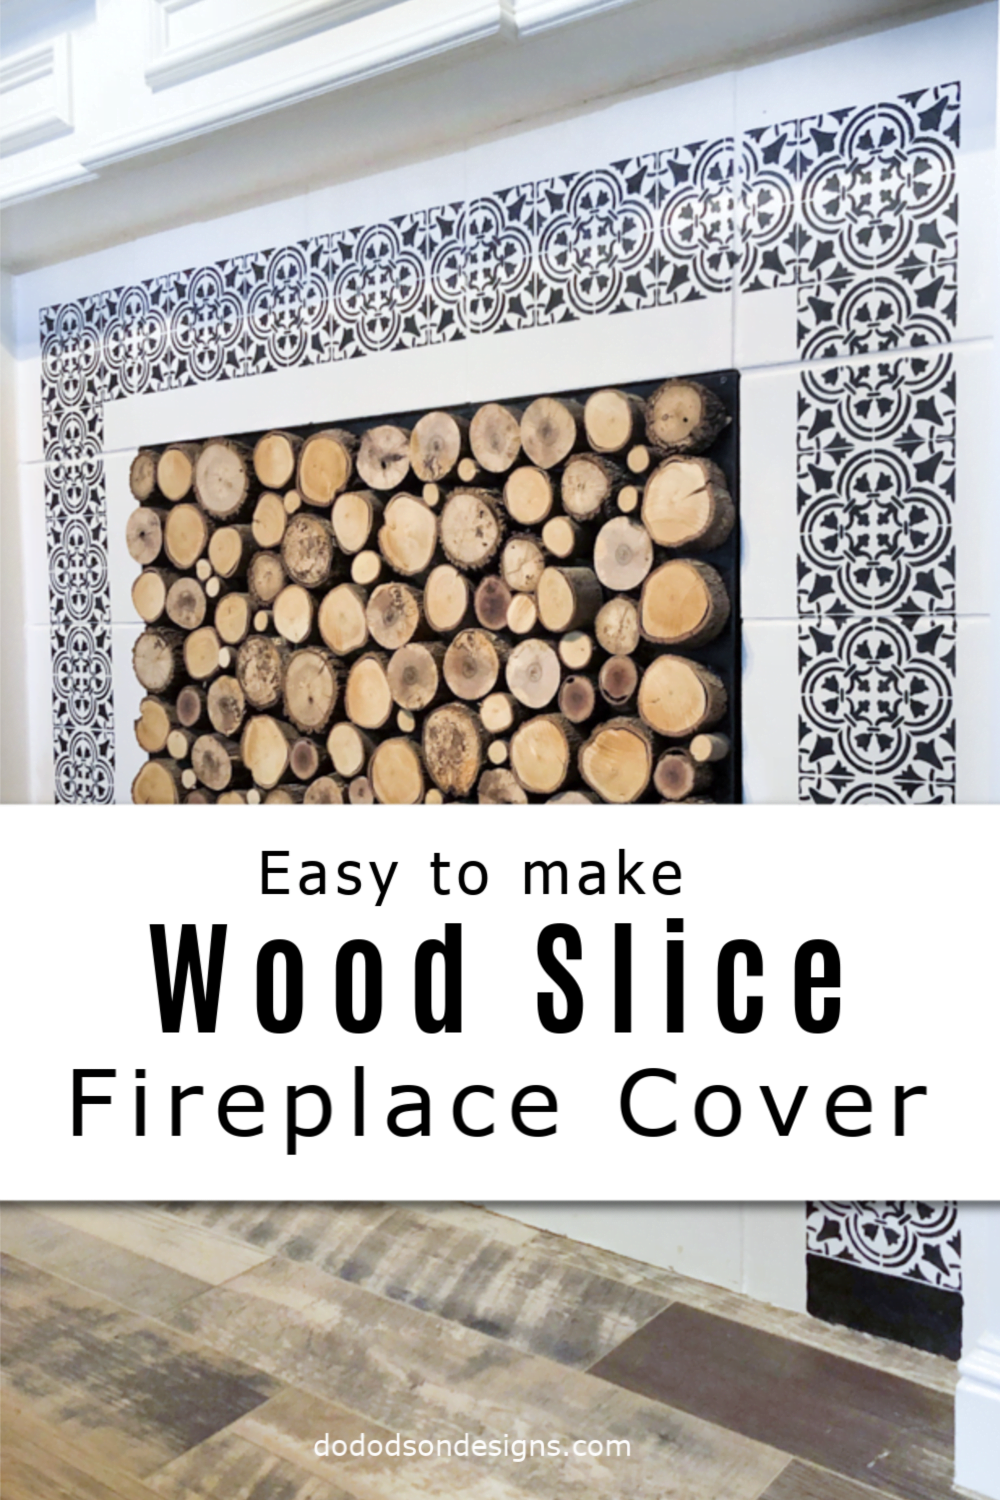 Easy DIY Wood Slice Fireplace Cover Idea